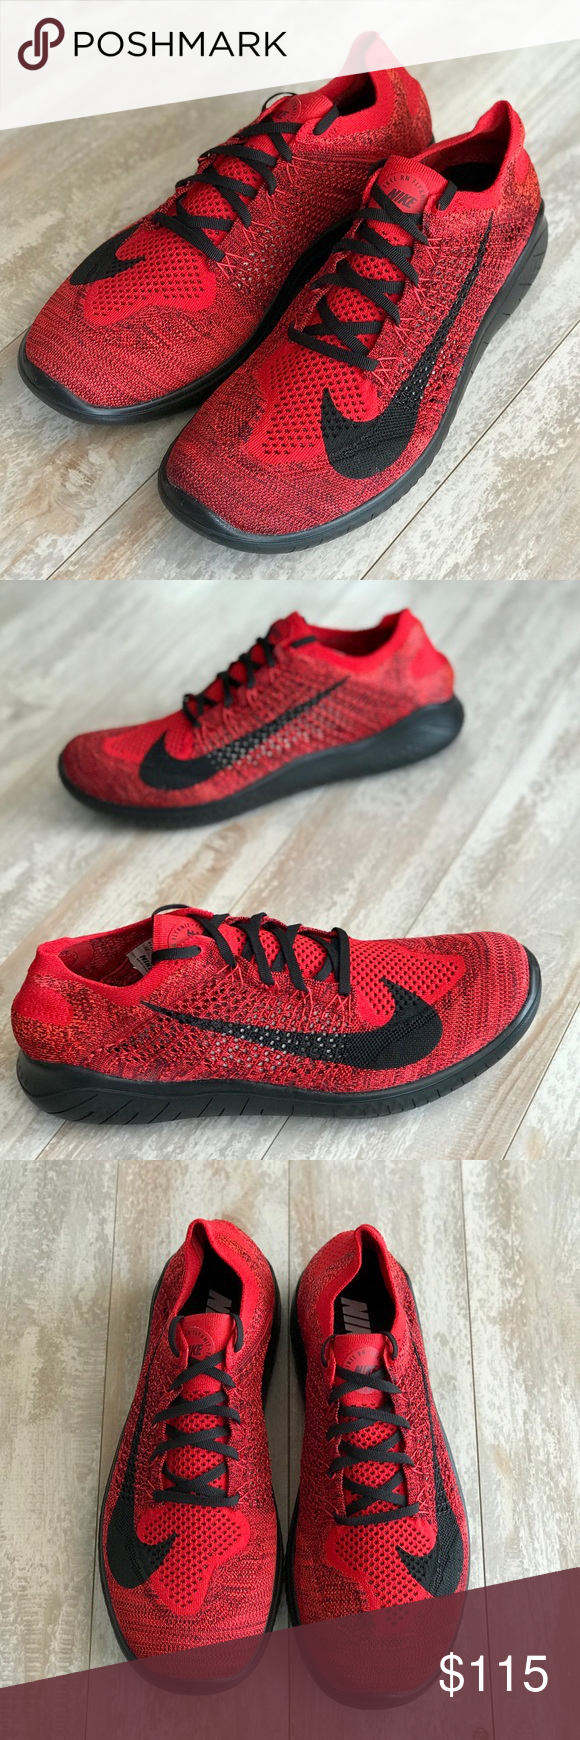 408043096247 NWT Nike ID Free Rn Flyknit 2018 Custom Brand new no box